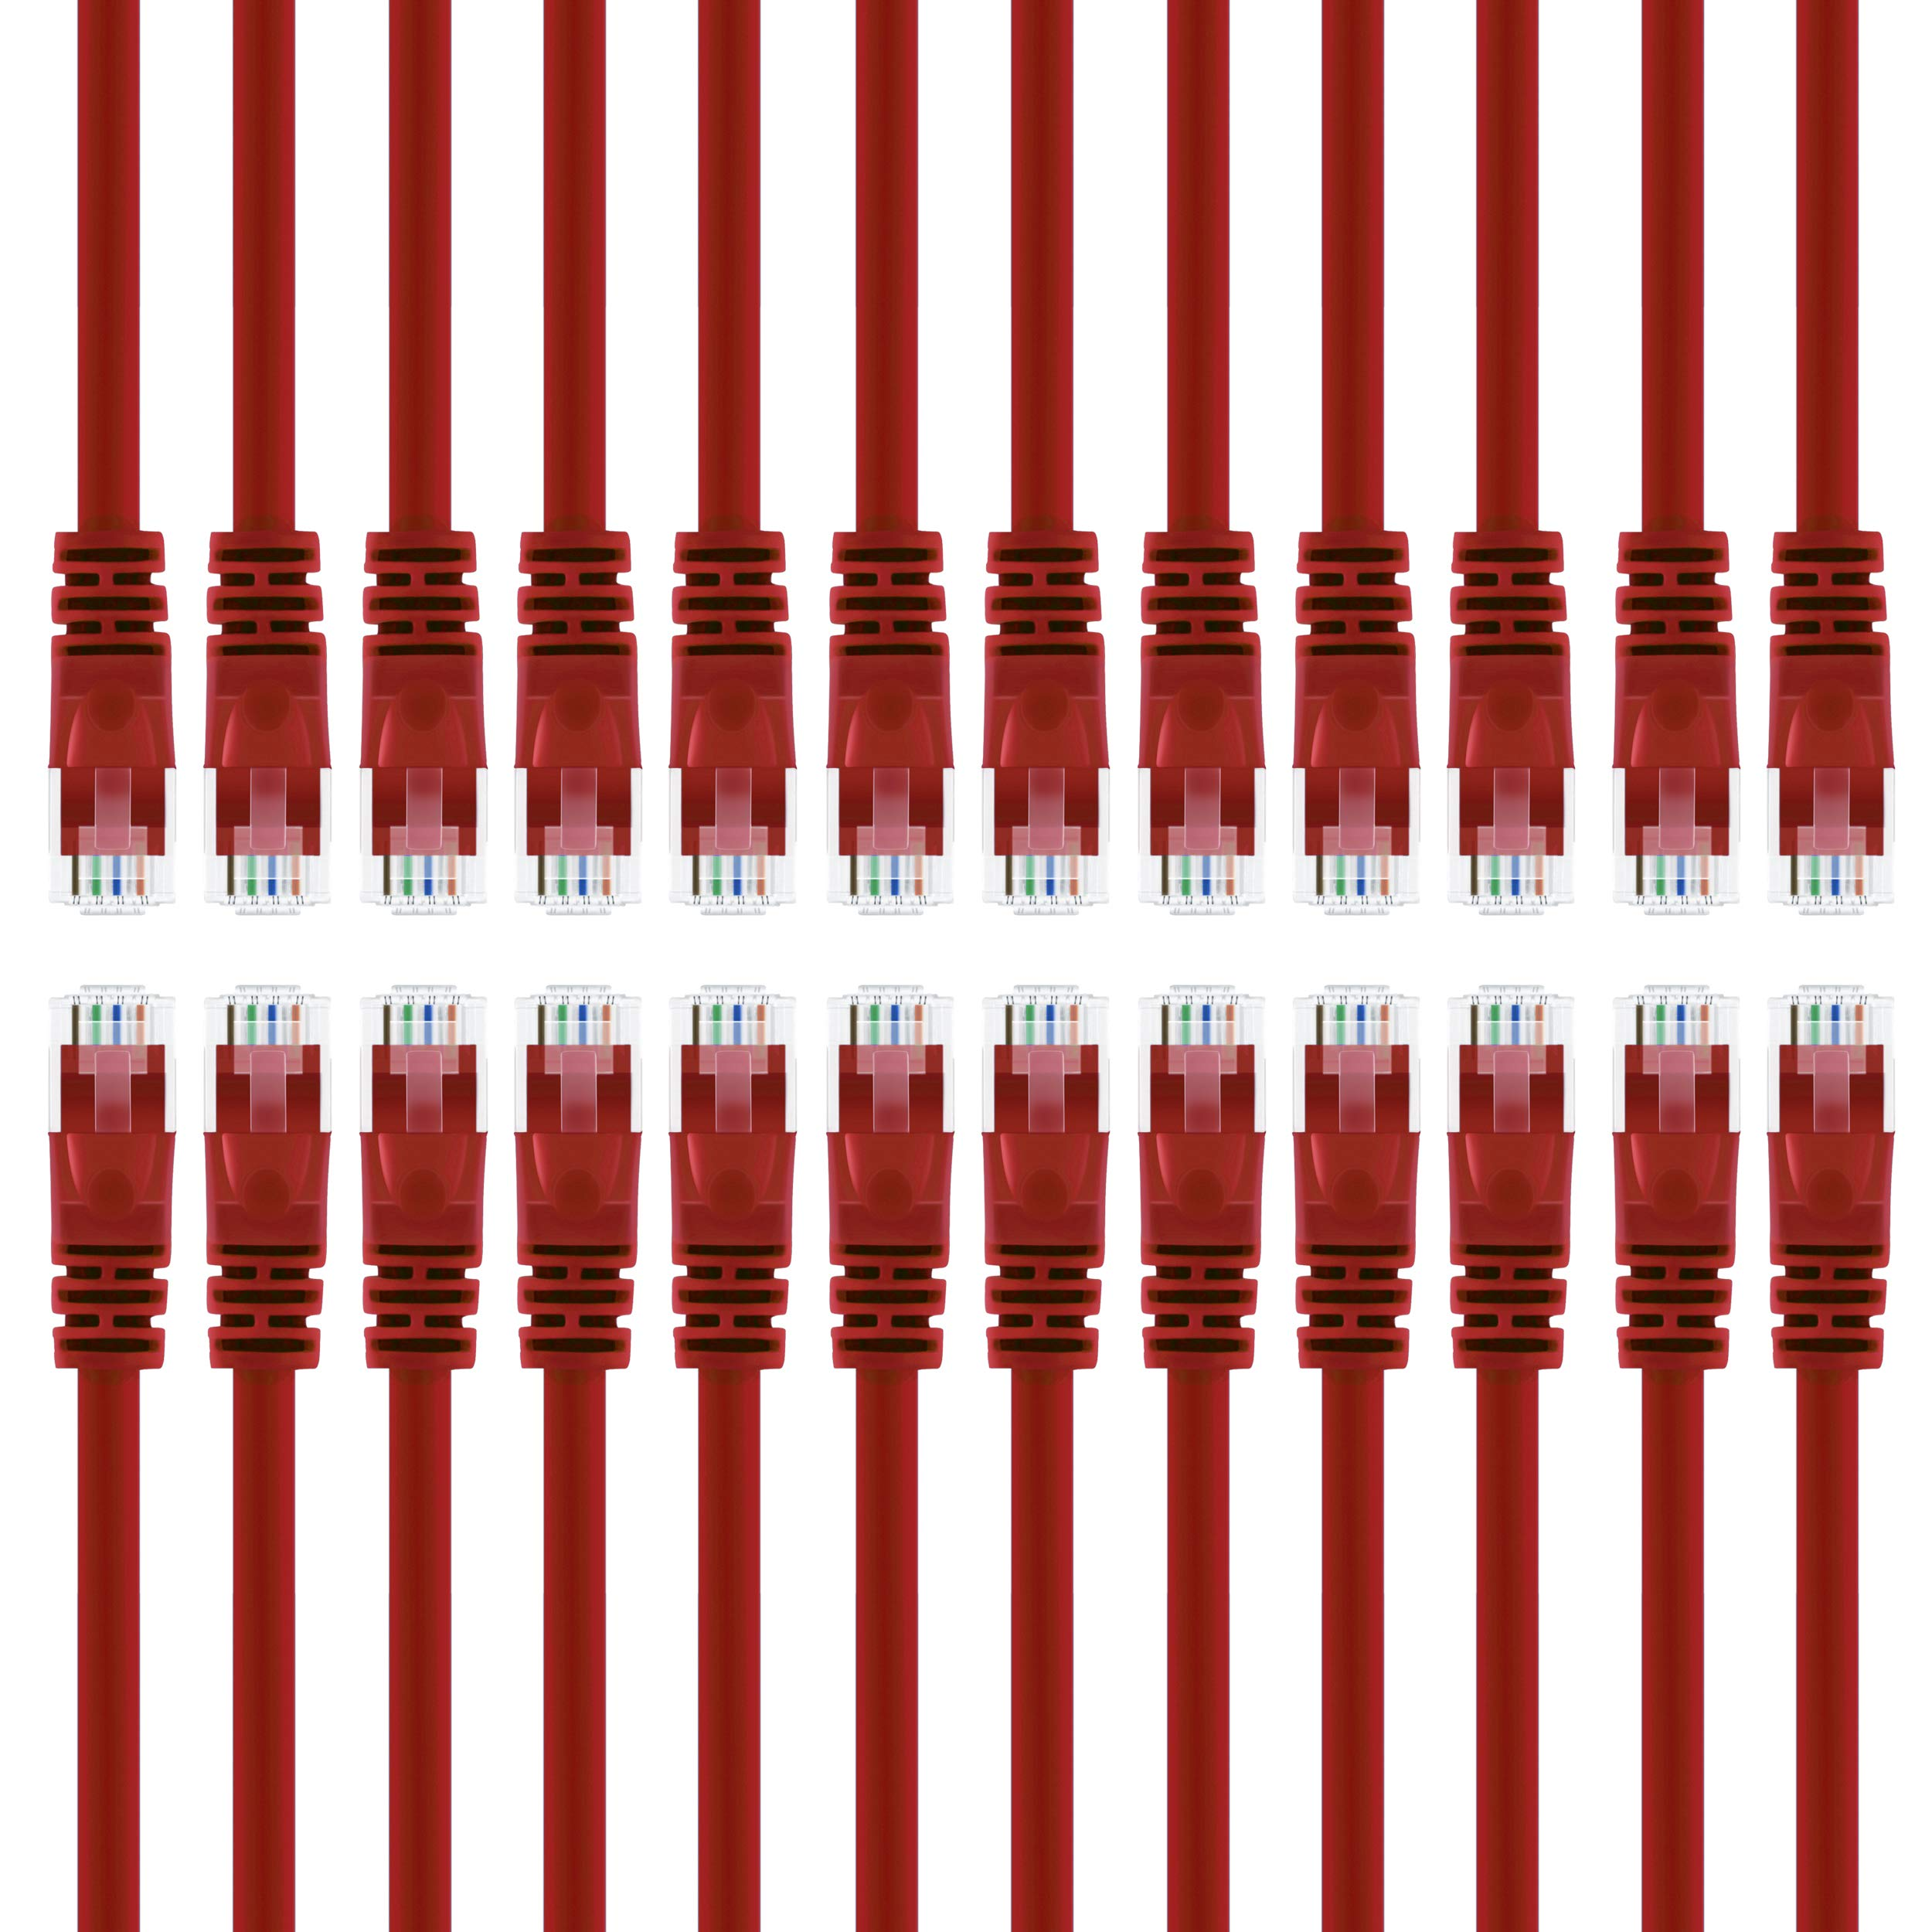 GearIT 24-Pack, Cat 6 Ethernet Cable Cat6 Snagless Patch 3 Feet - Snagless RJ45 Computer LAN Network Cord, Red - Compatible with 24 48 Port Switch POE Rackmount 24port Gigabit by GearIT